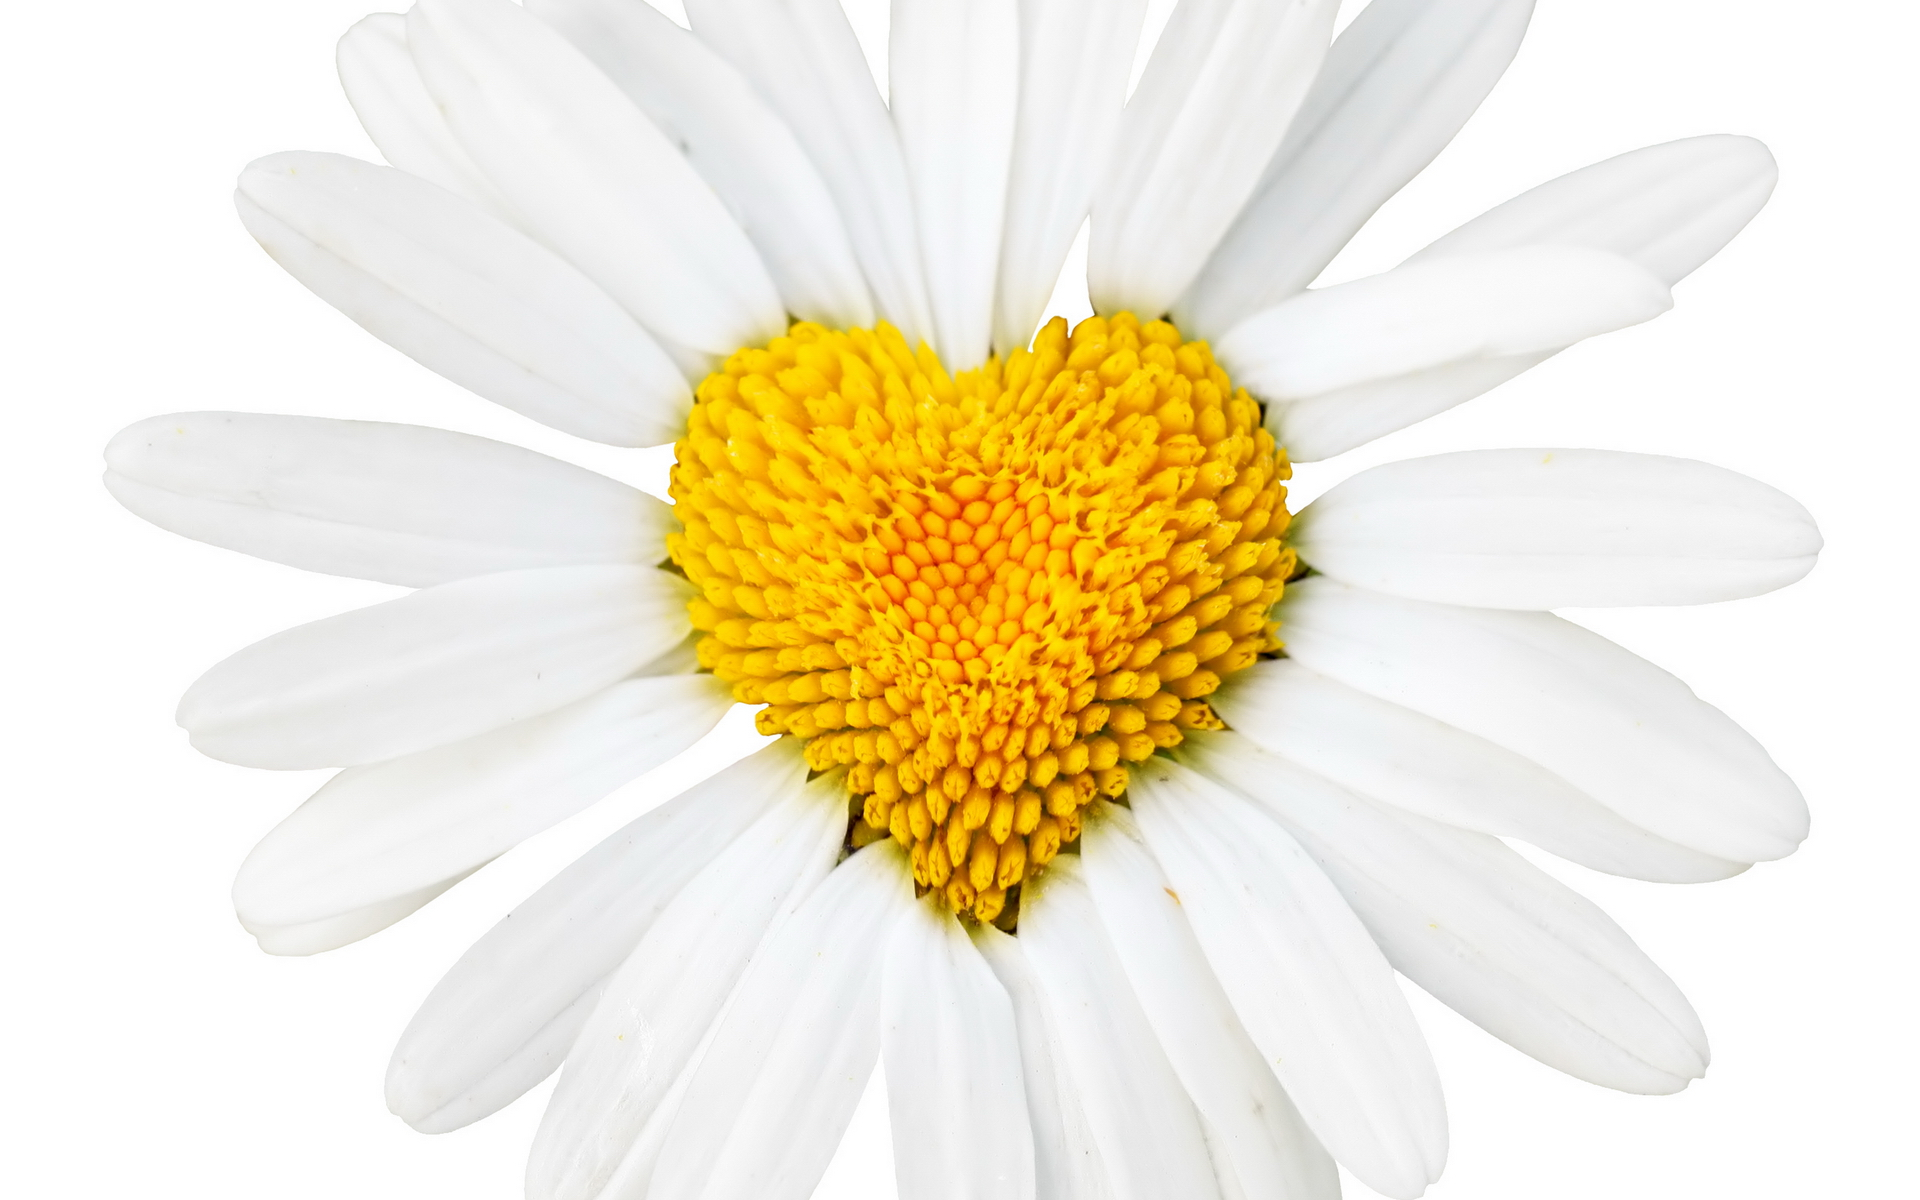 Daisy With Heart Middle Hd Wallpaper Background Image 1920x1200